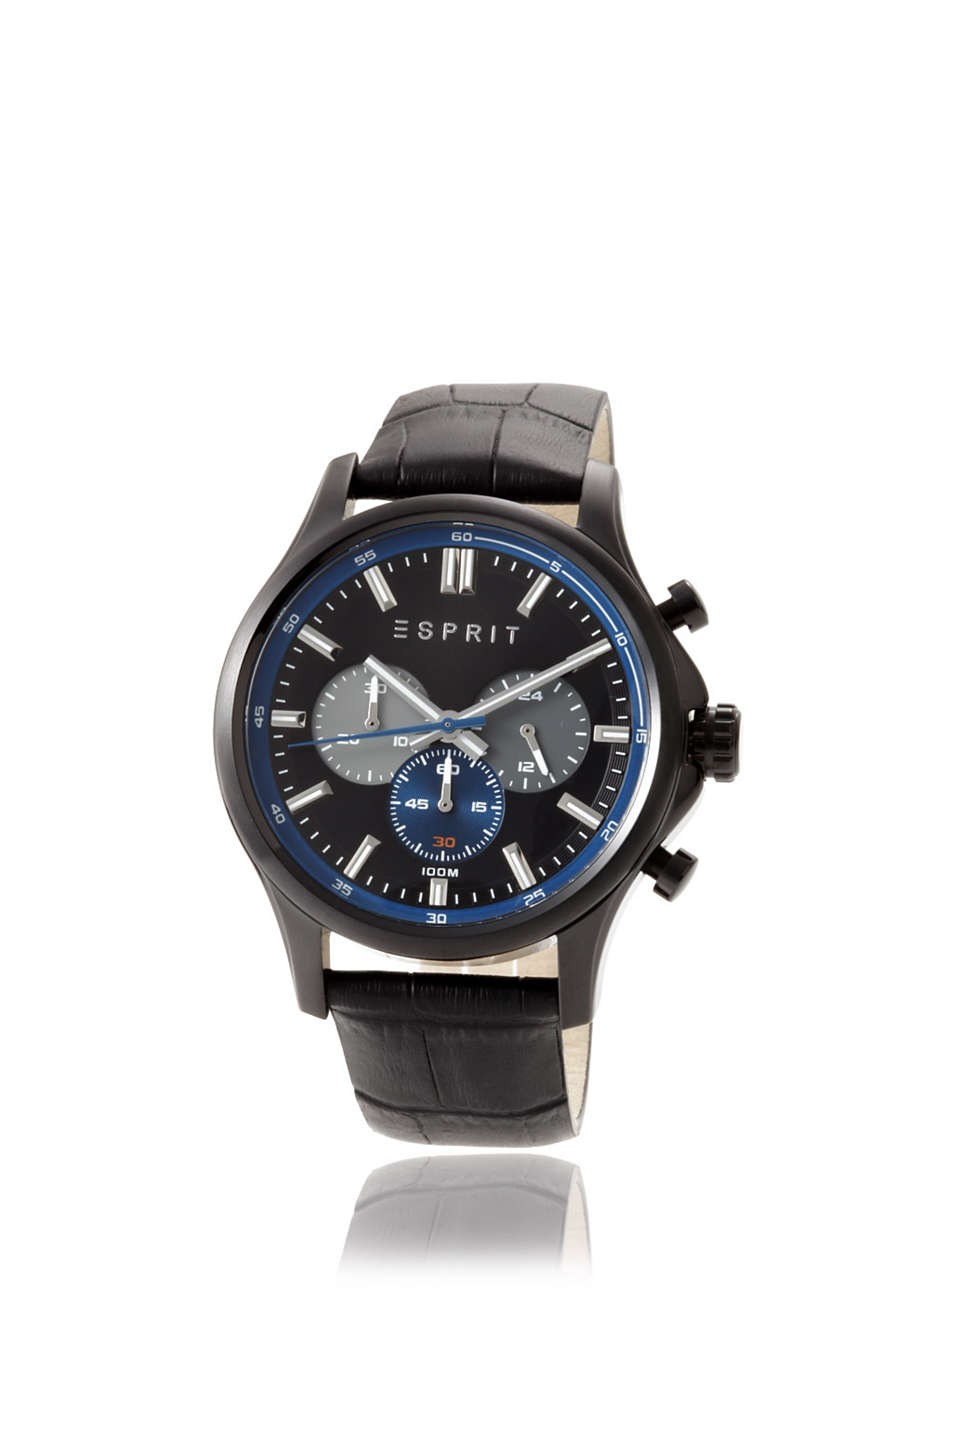 Mathias Night, black stainless steel casing, leather strap, stop watch function, 24-hour hand, Ø approx. 45 mm